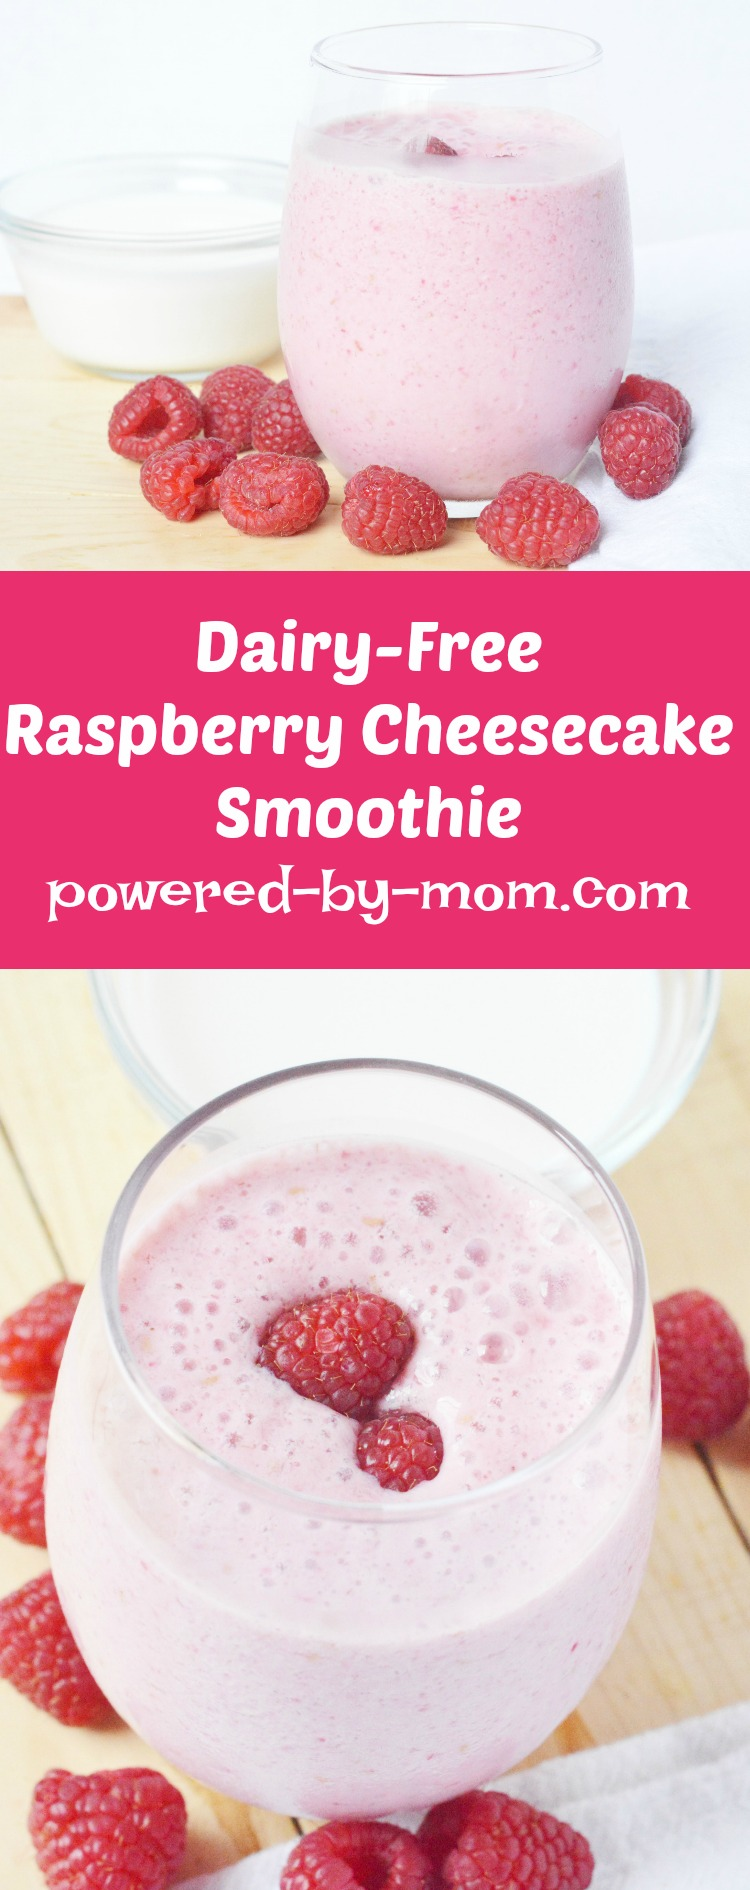 Healthy Smoothies Dairy Free Raspberry Cheesecake Smoothie